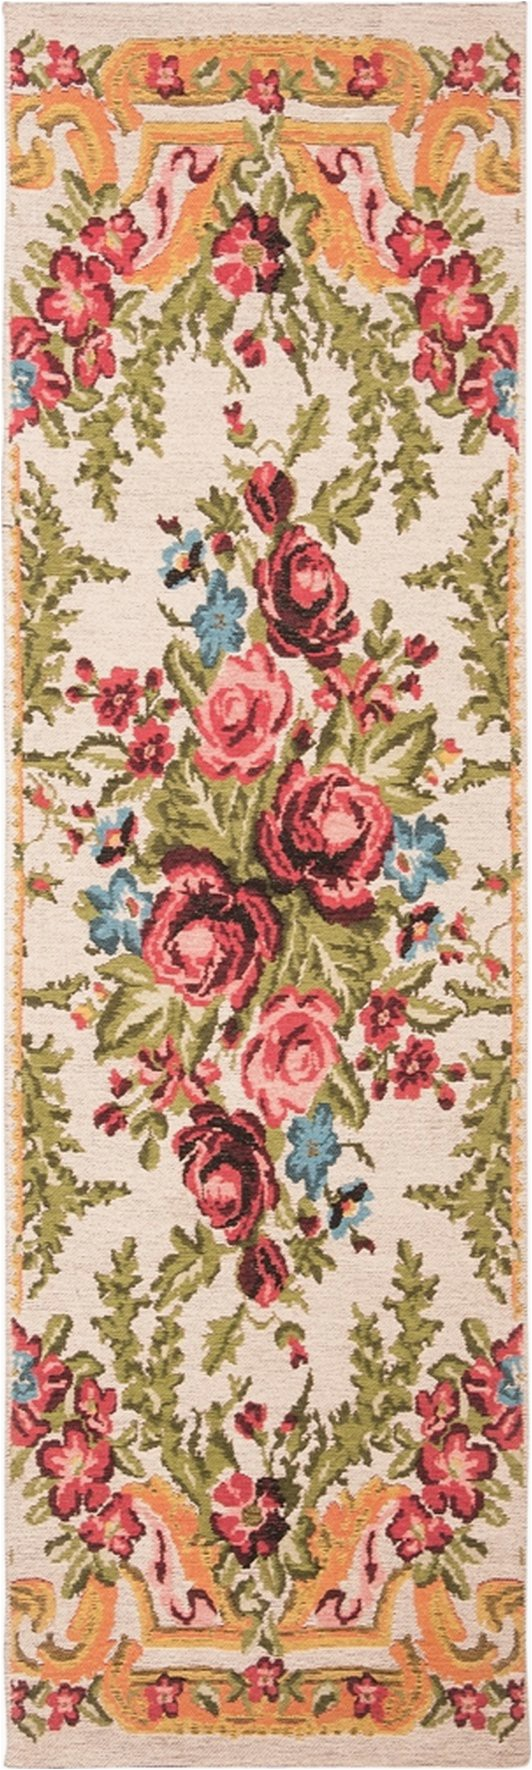 Roses Department Store area Rugs Safavieh Classic Vintage Clv112a Ivory Rose area Rug